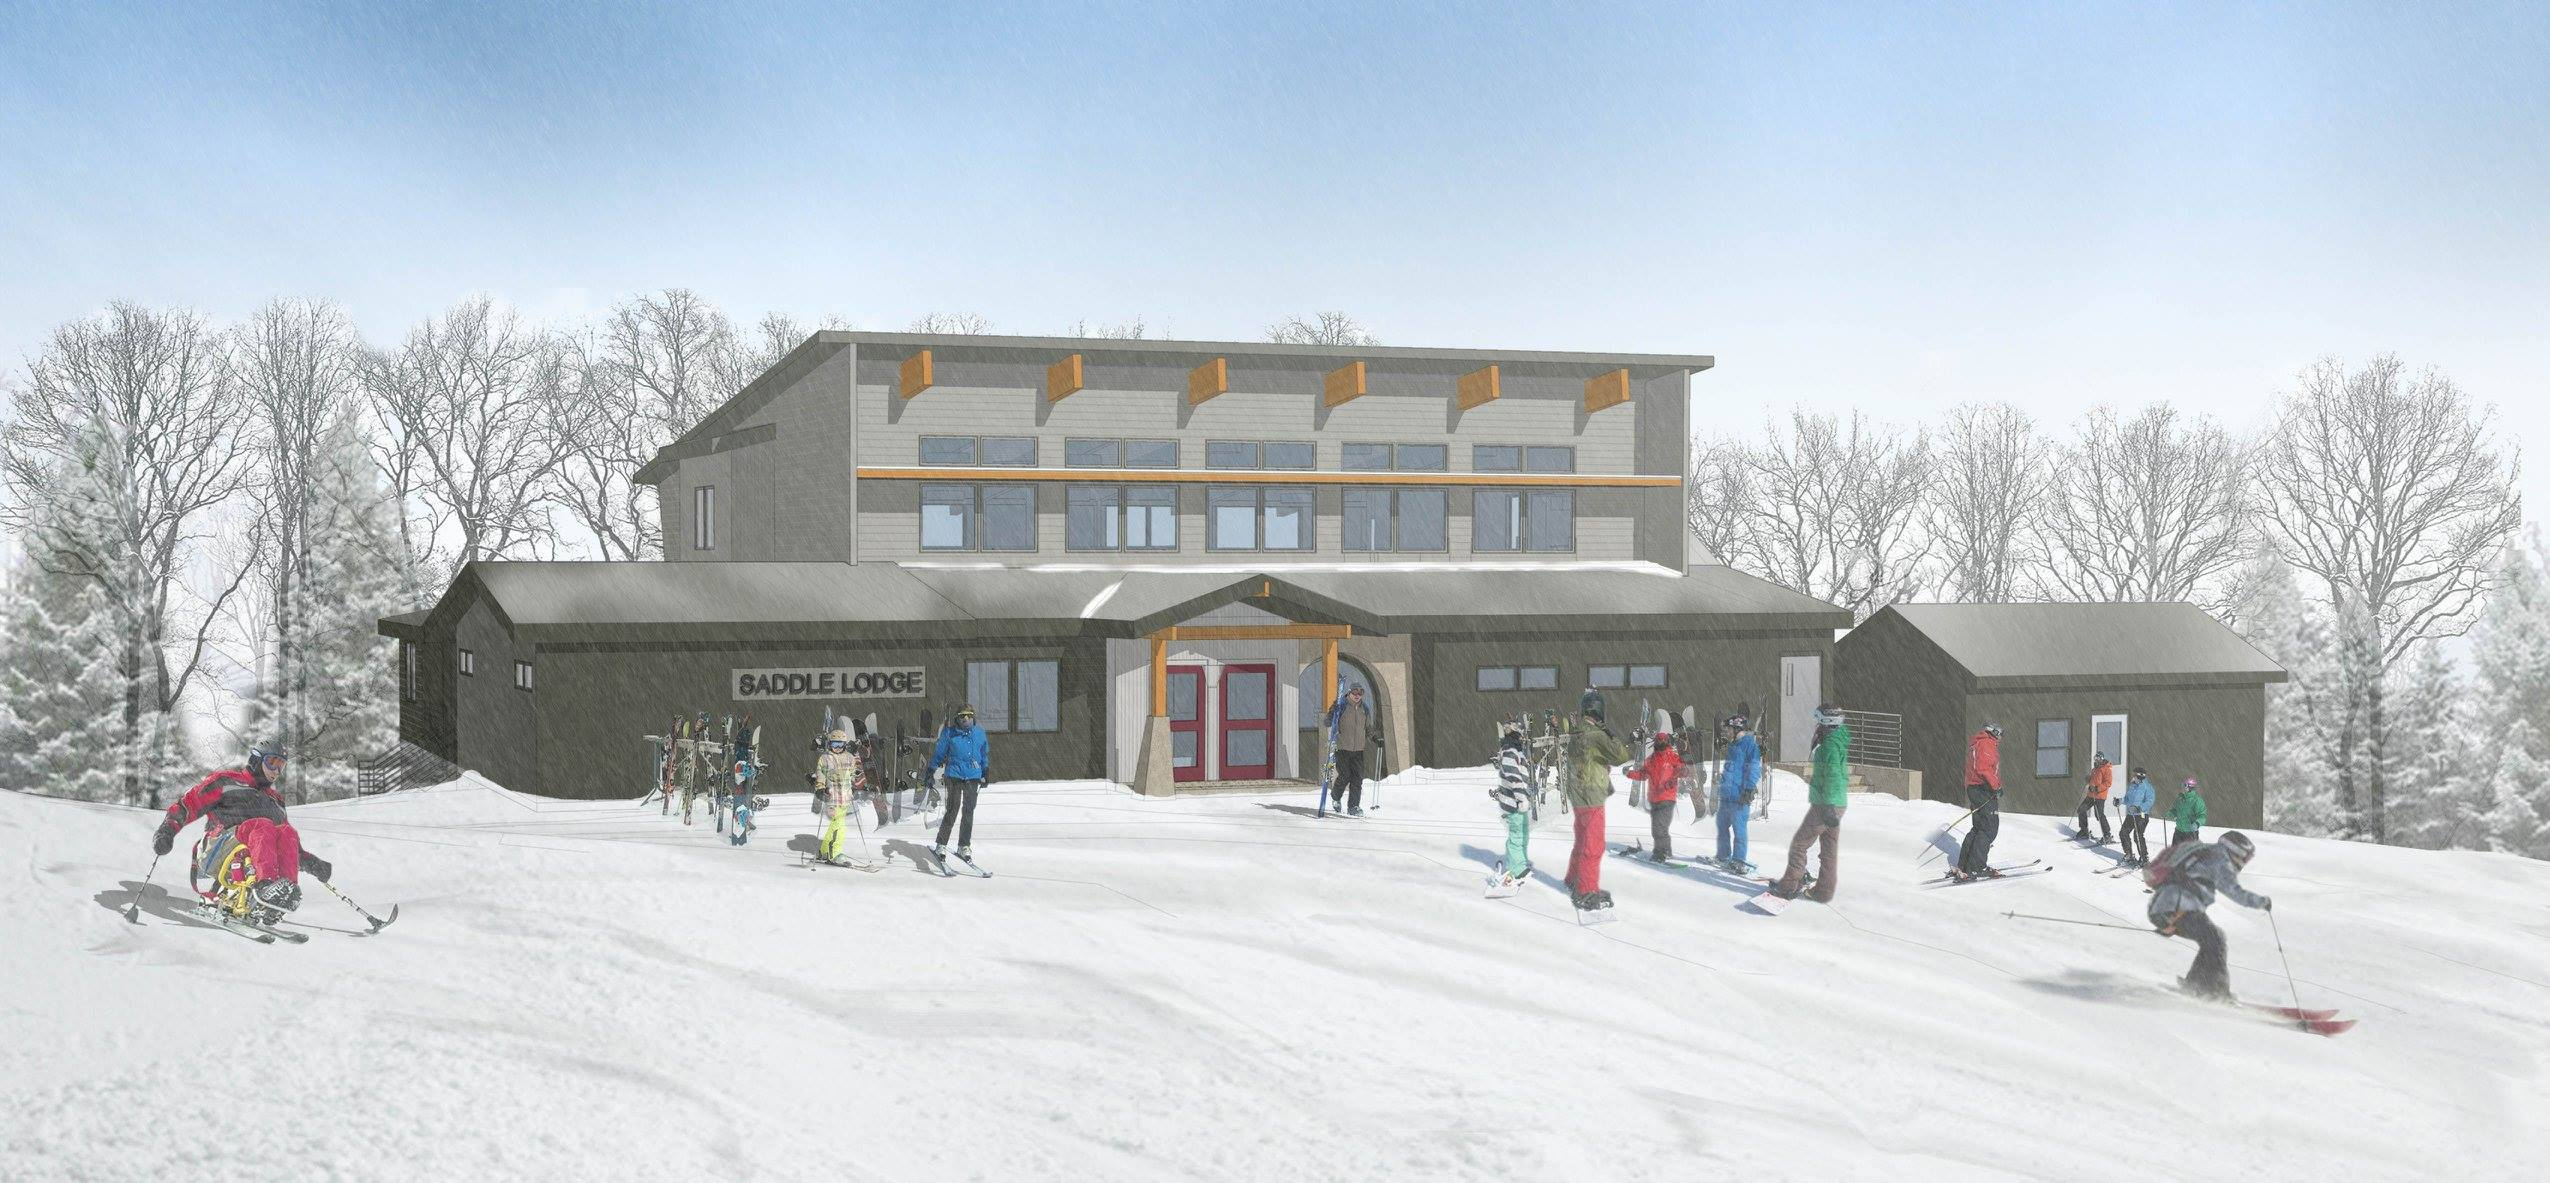 Rendering of New Saddle Lodge